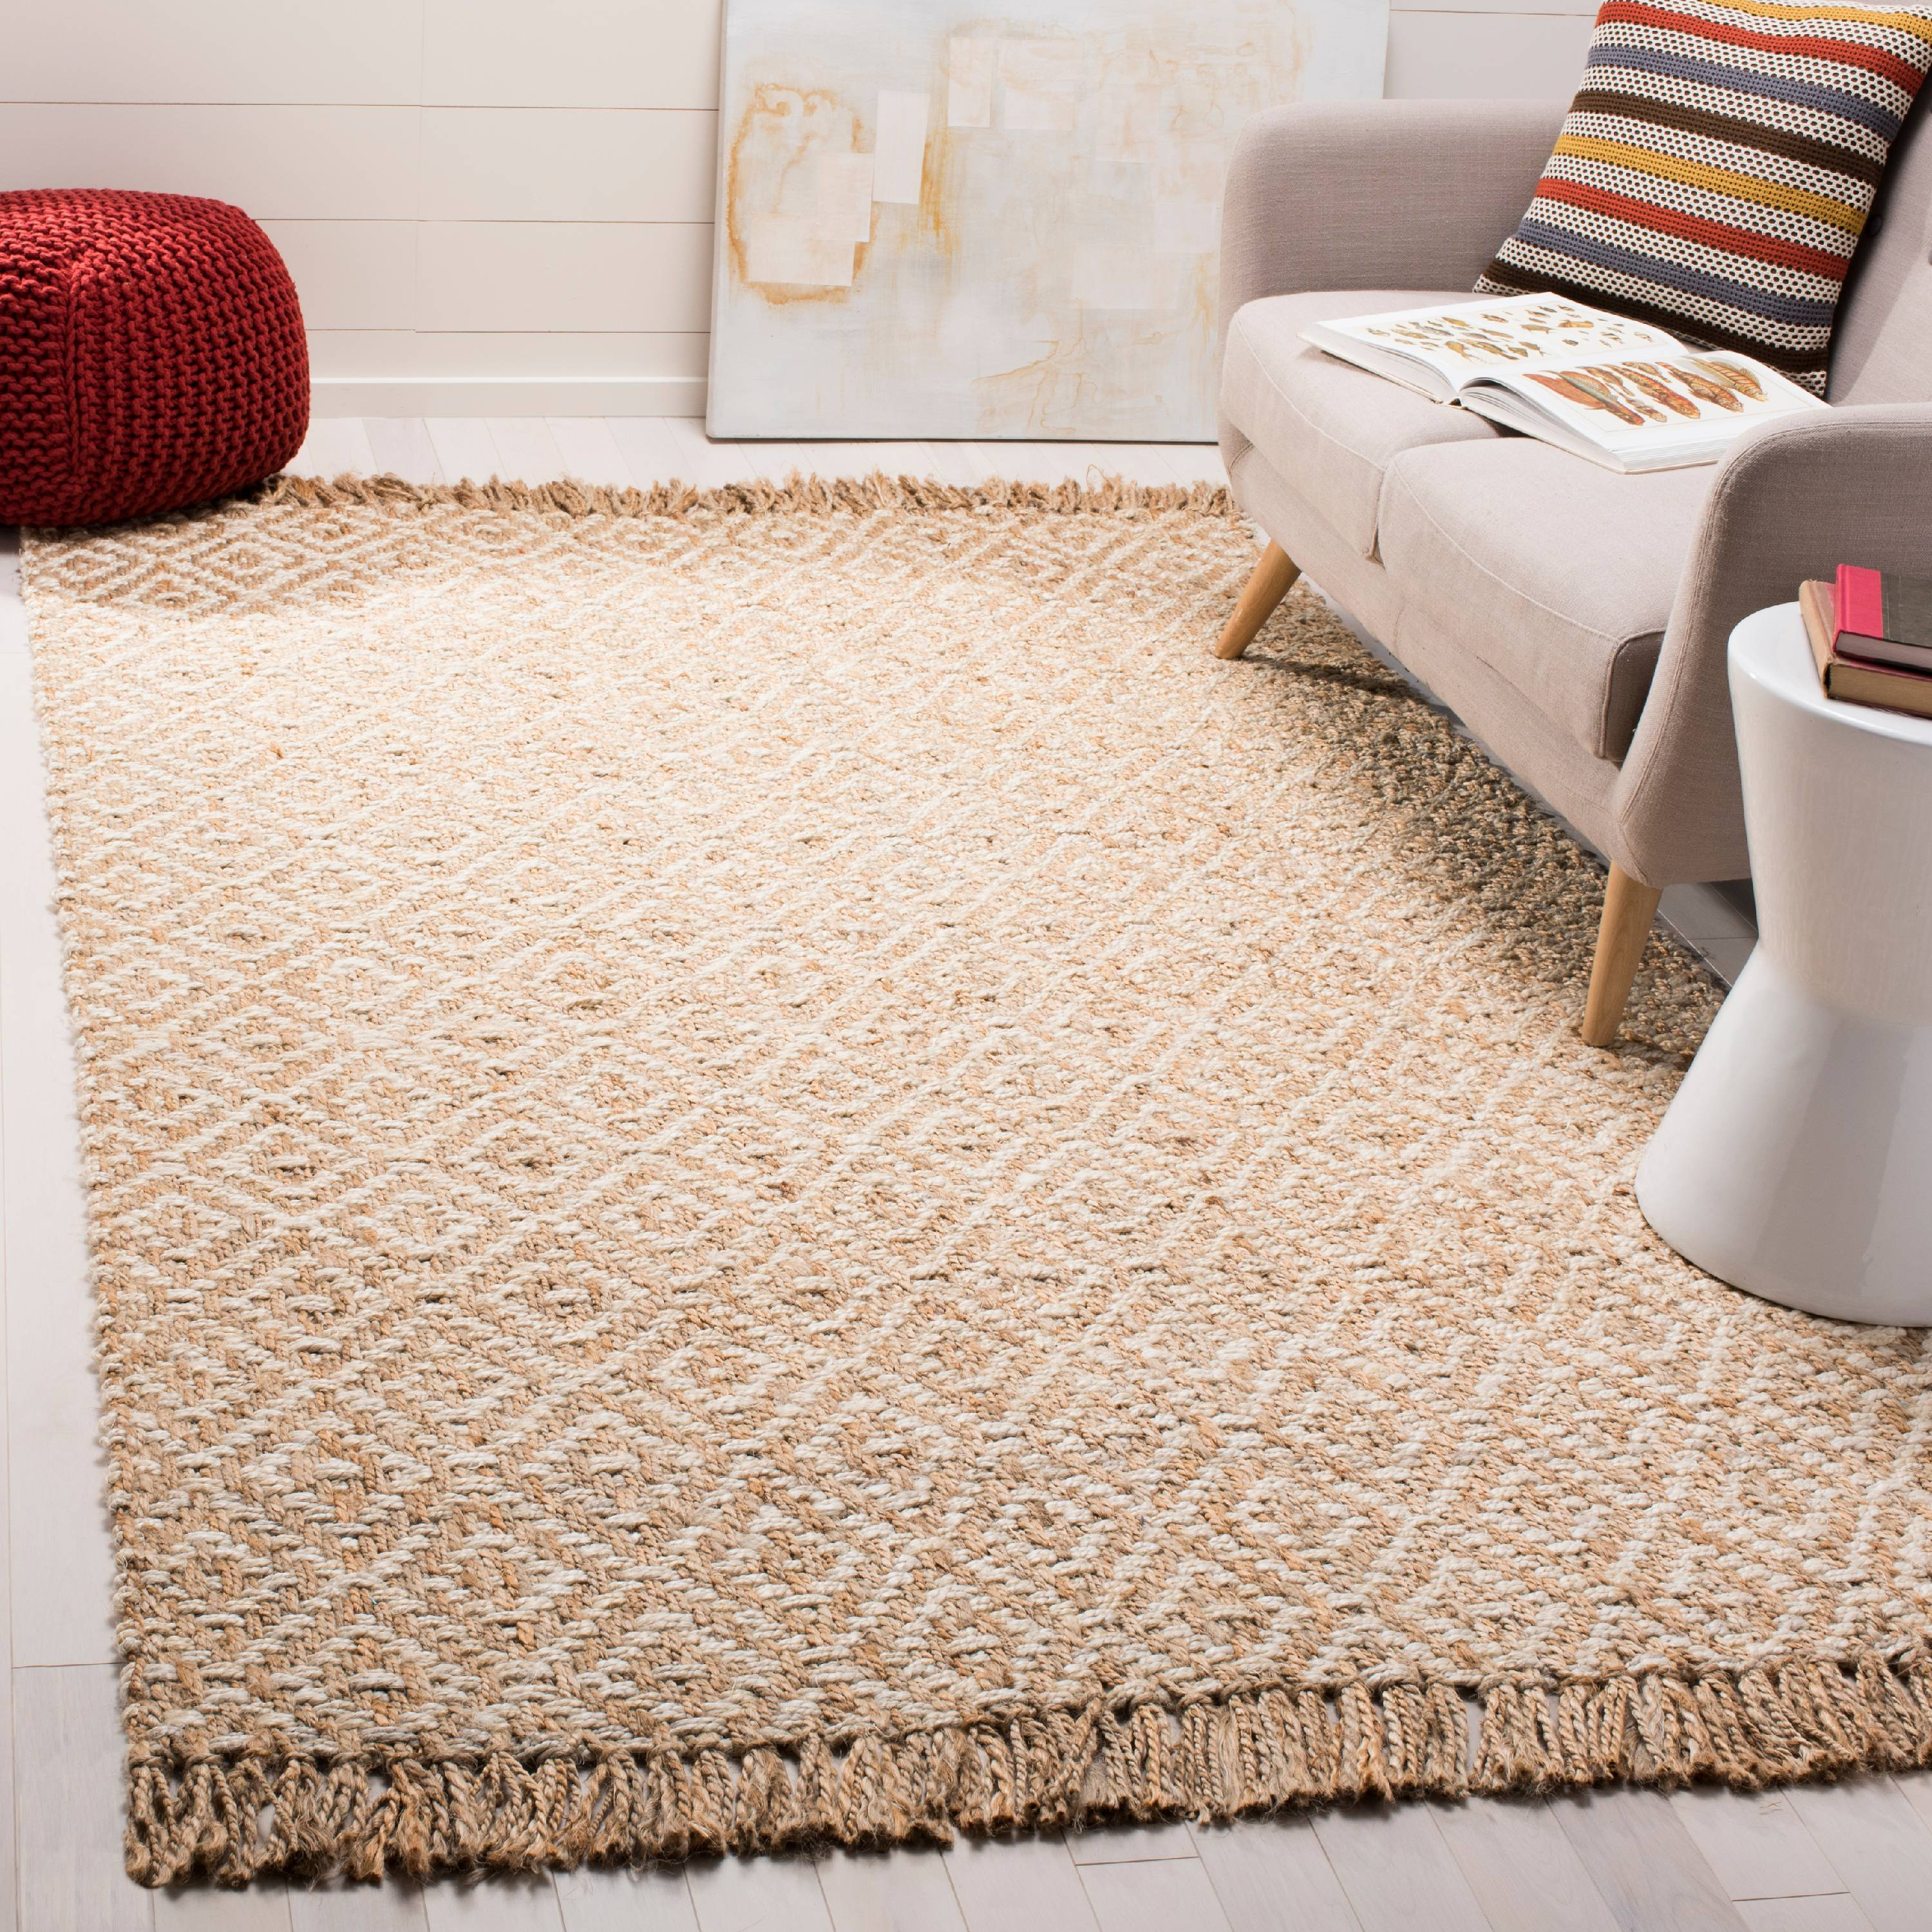 Safavieh Natural Fiber Thomas Geometric Braided Fringe Area Rug or Runner